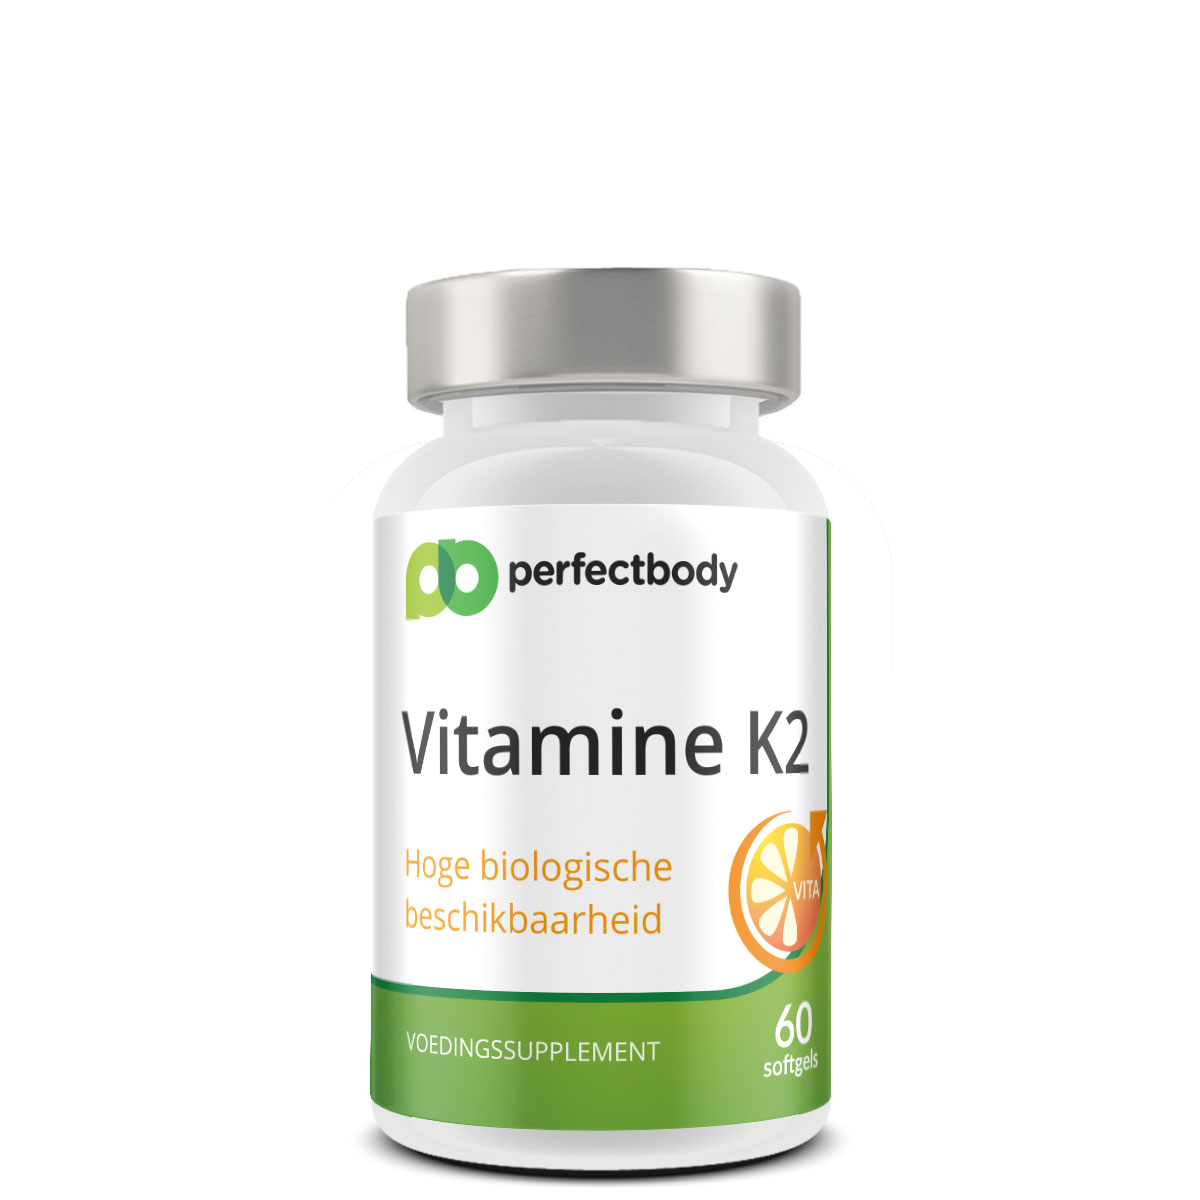 Perfectbody Vitamine K2 MK-7 Capsules - 60 Softgels